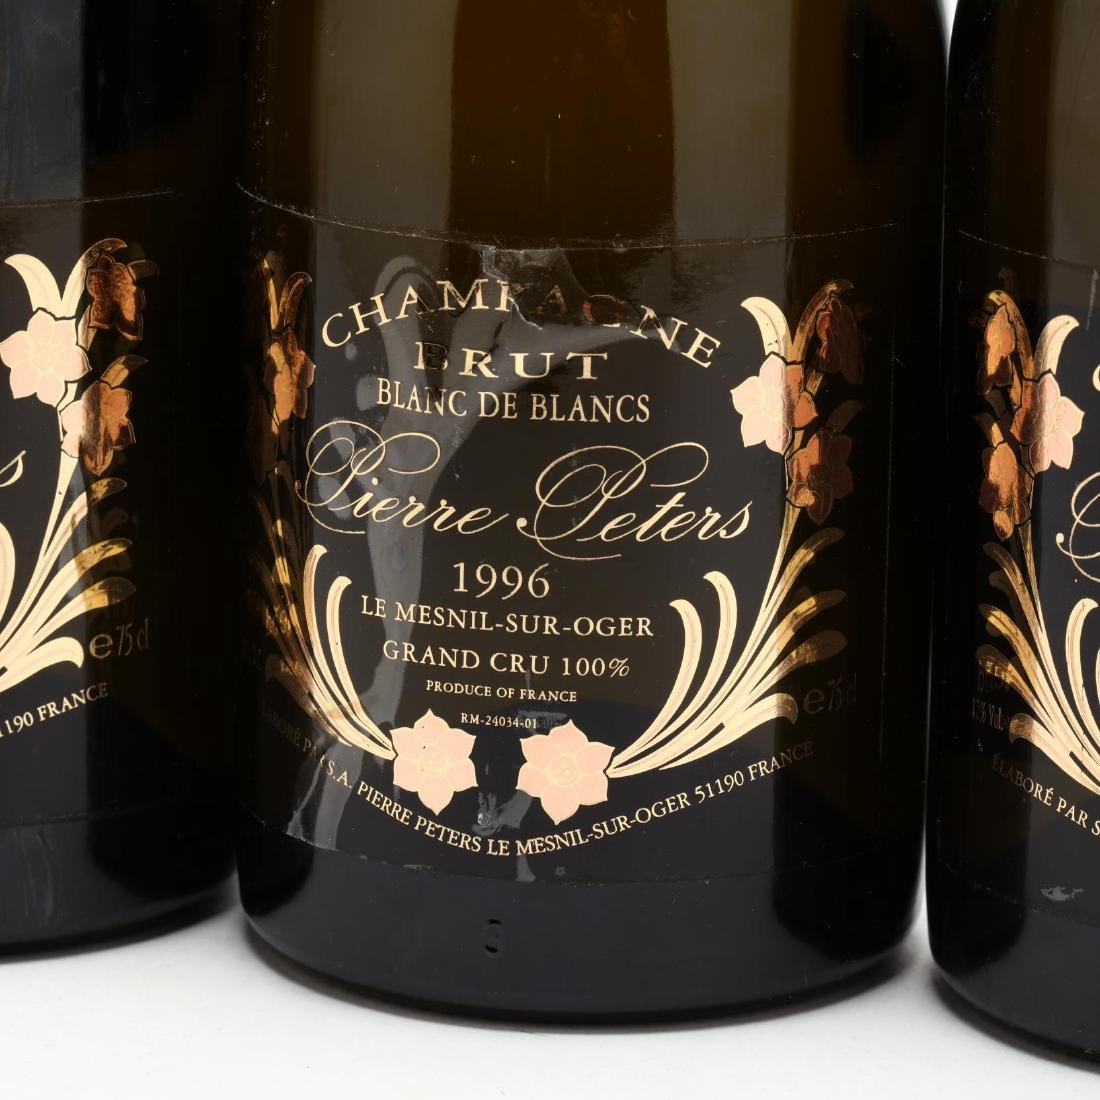 Pierre Peters Champagne - Vintage 1996 - 2